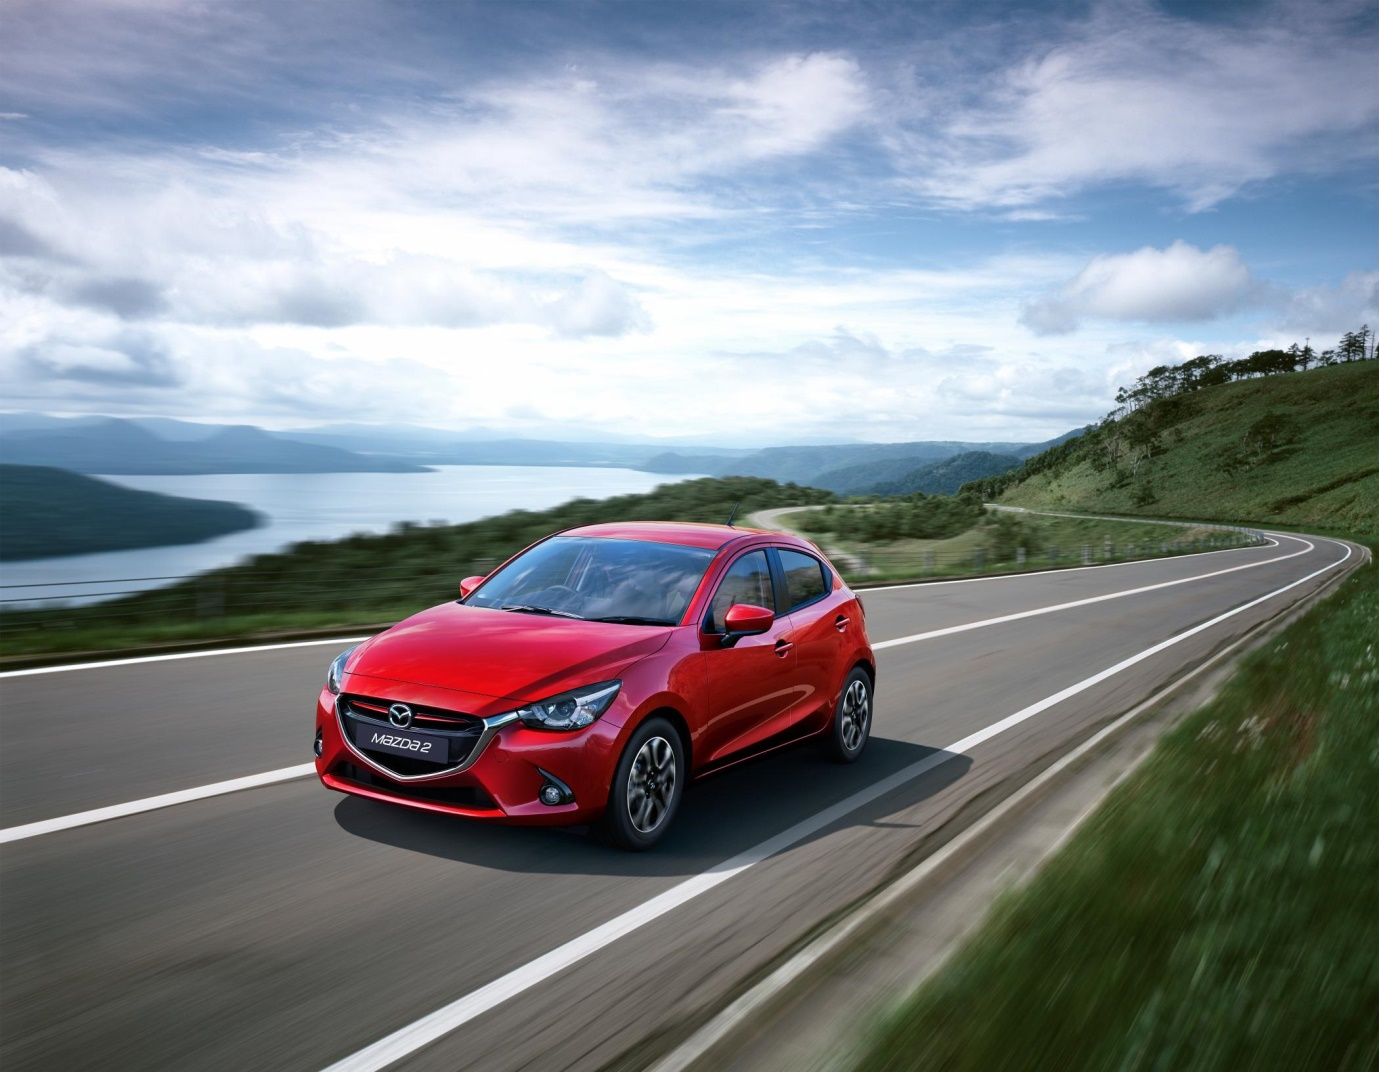 Mazda2 to cost from £11,995